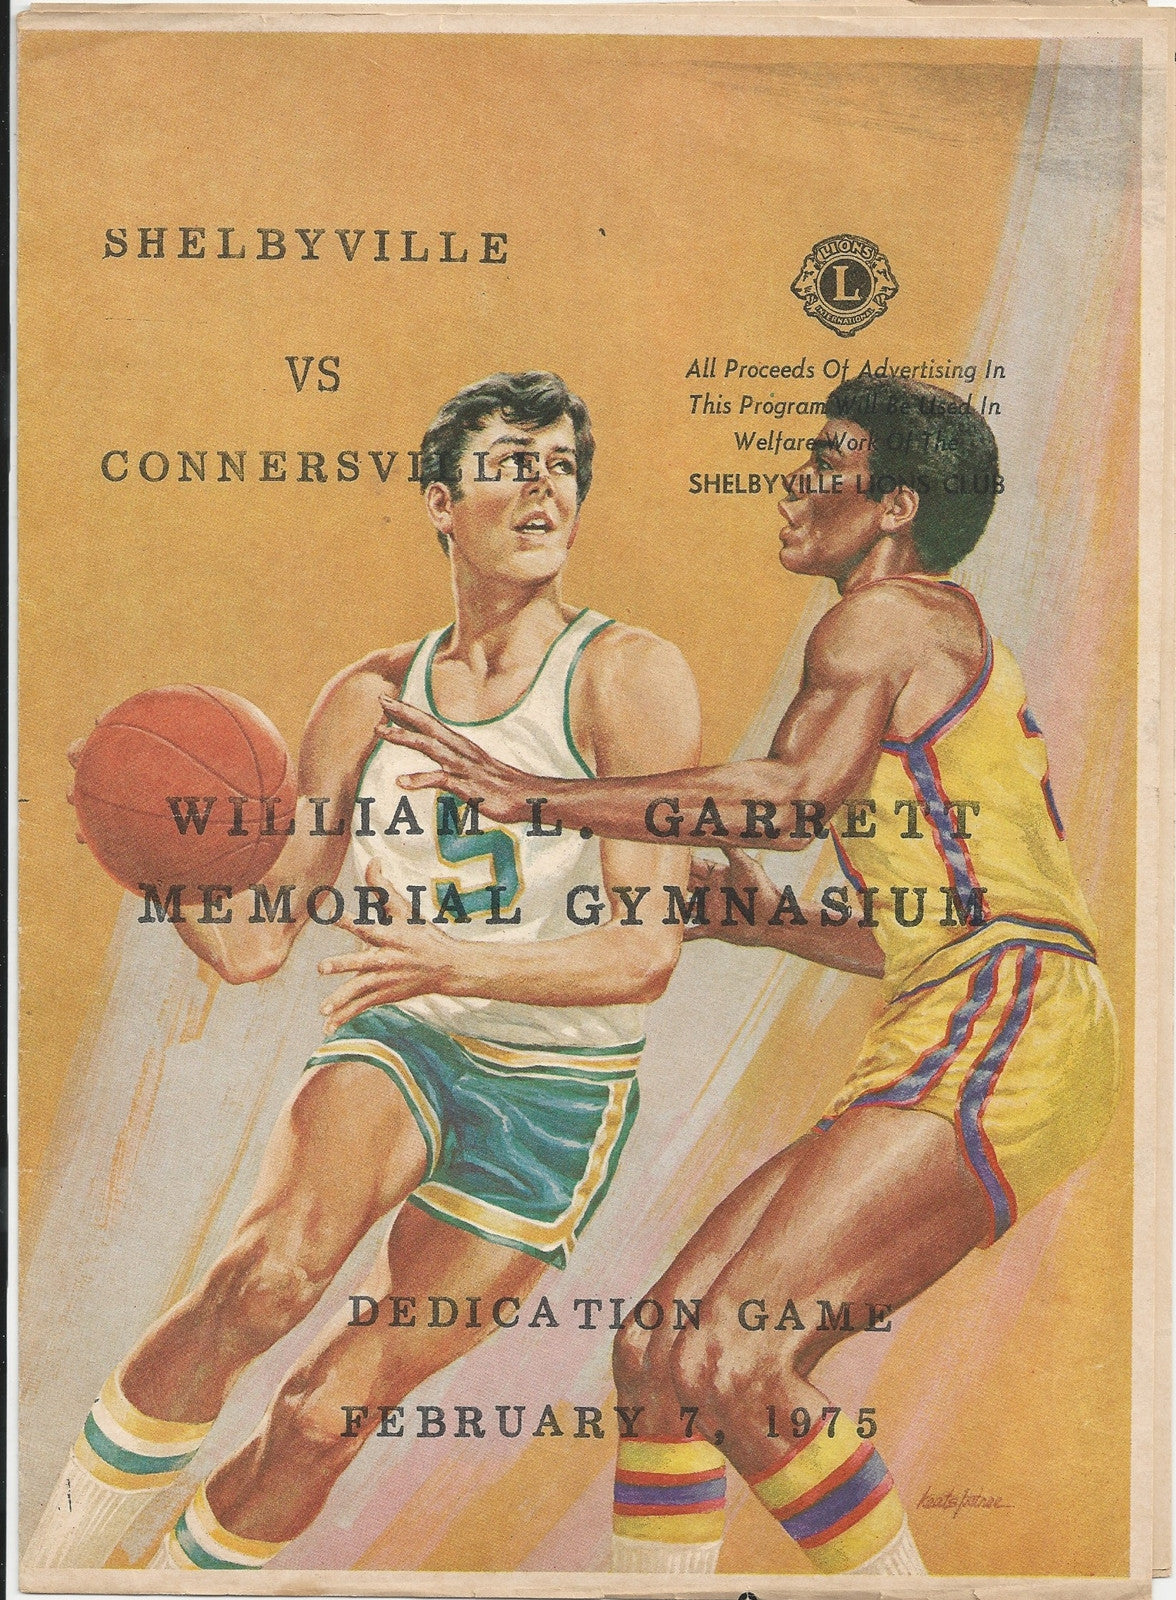 1975 Shelbyville vs Connersville Indiana High School Basketball Program, Gym Dedication - Vintage Indy Sports